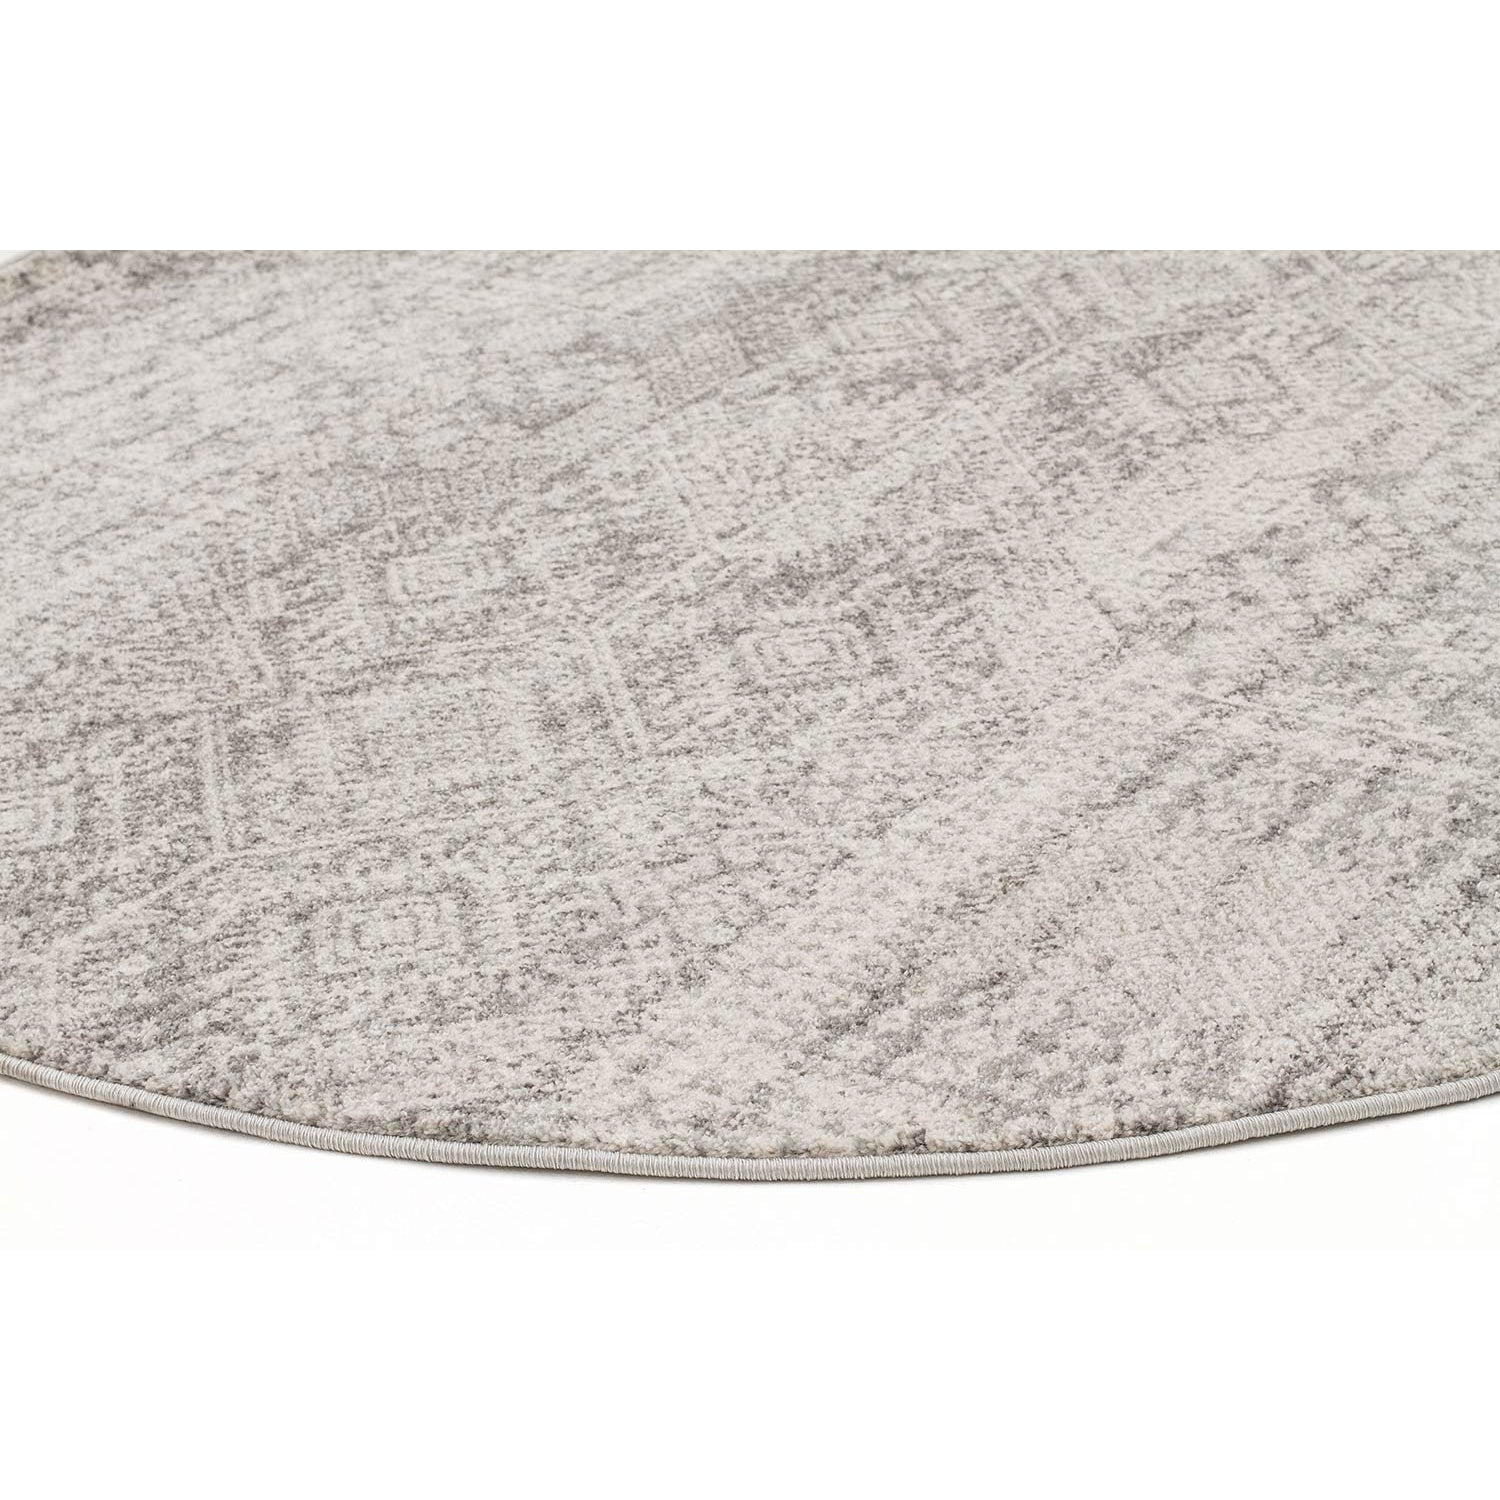 Manisa 751 Silver Grey Patterned Transitional Designer Round Rug